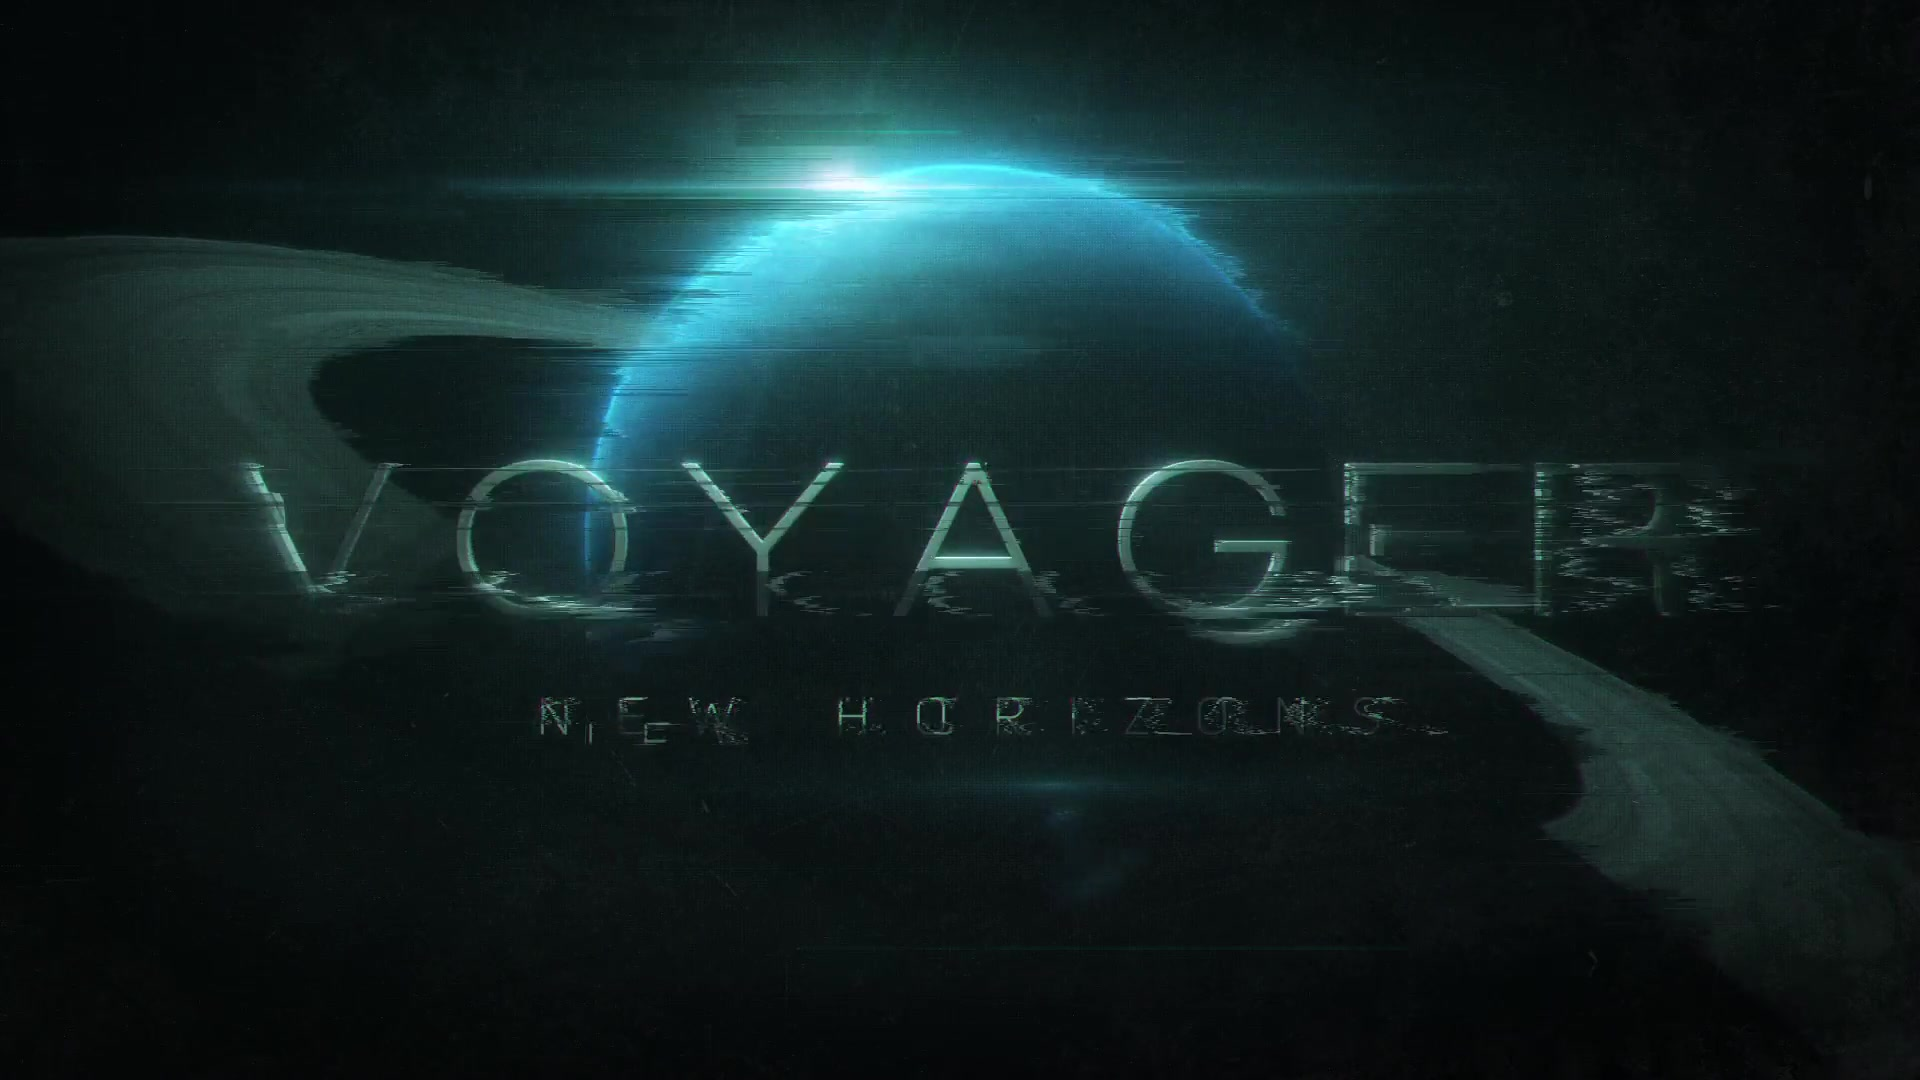 Planet Logo Title Reveal Videohive 20869322 After Effects Image 3